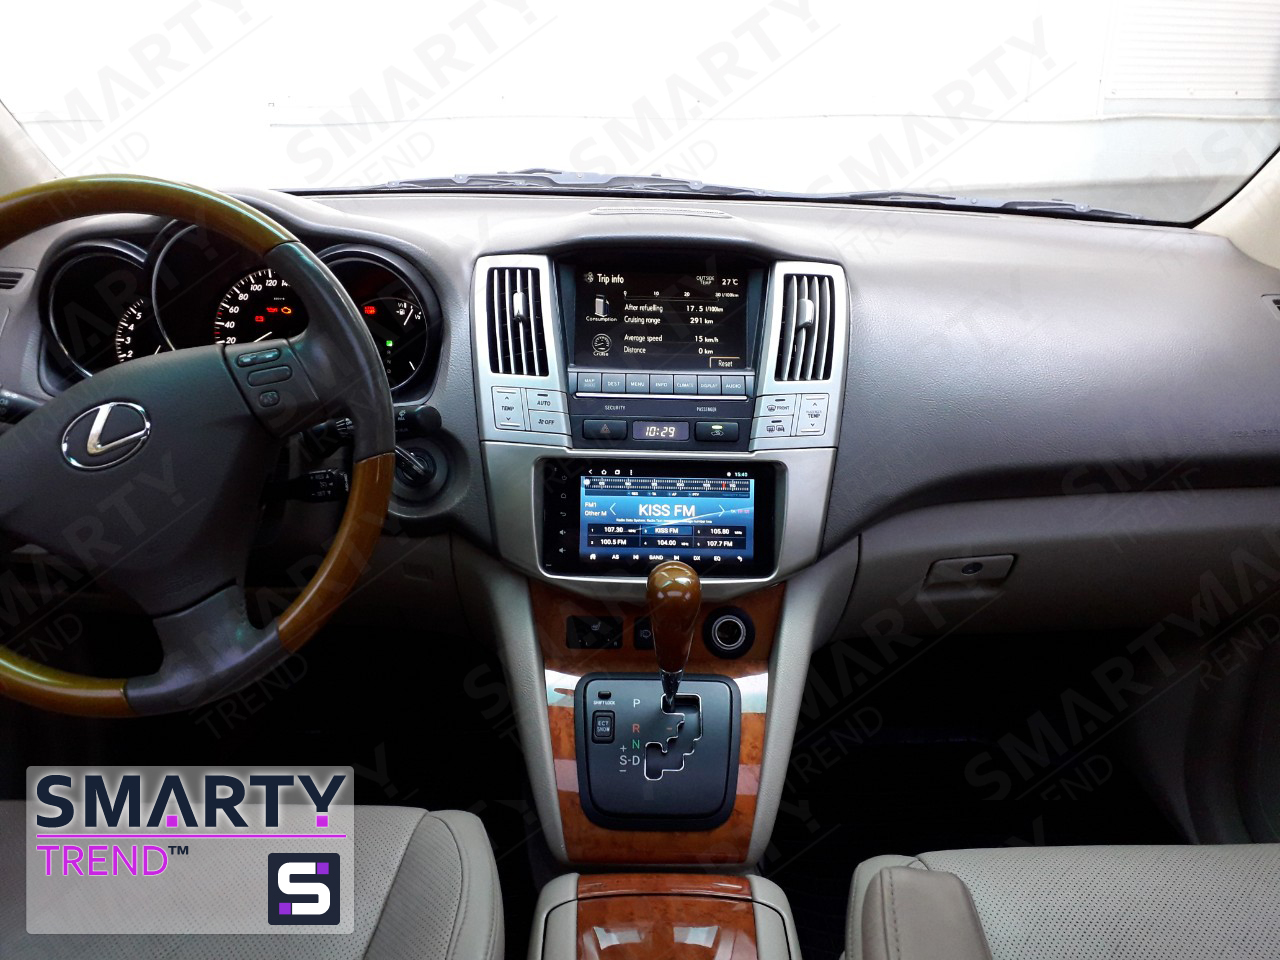 Smarty Trend Head Unit Overview For Lexus Rx 350 2007 Info Blog News And Video Reviews About Android In Dash Car Head Units